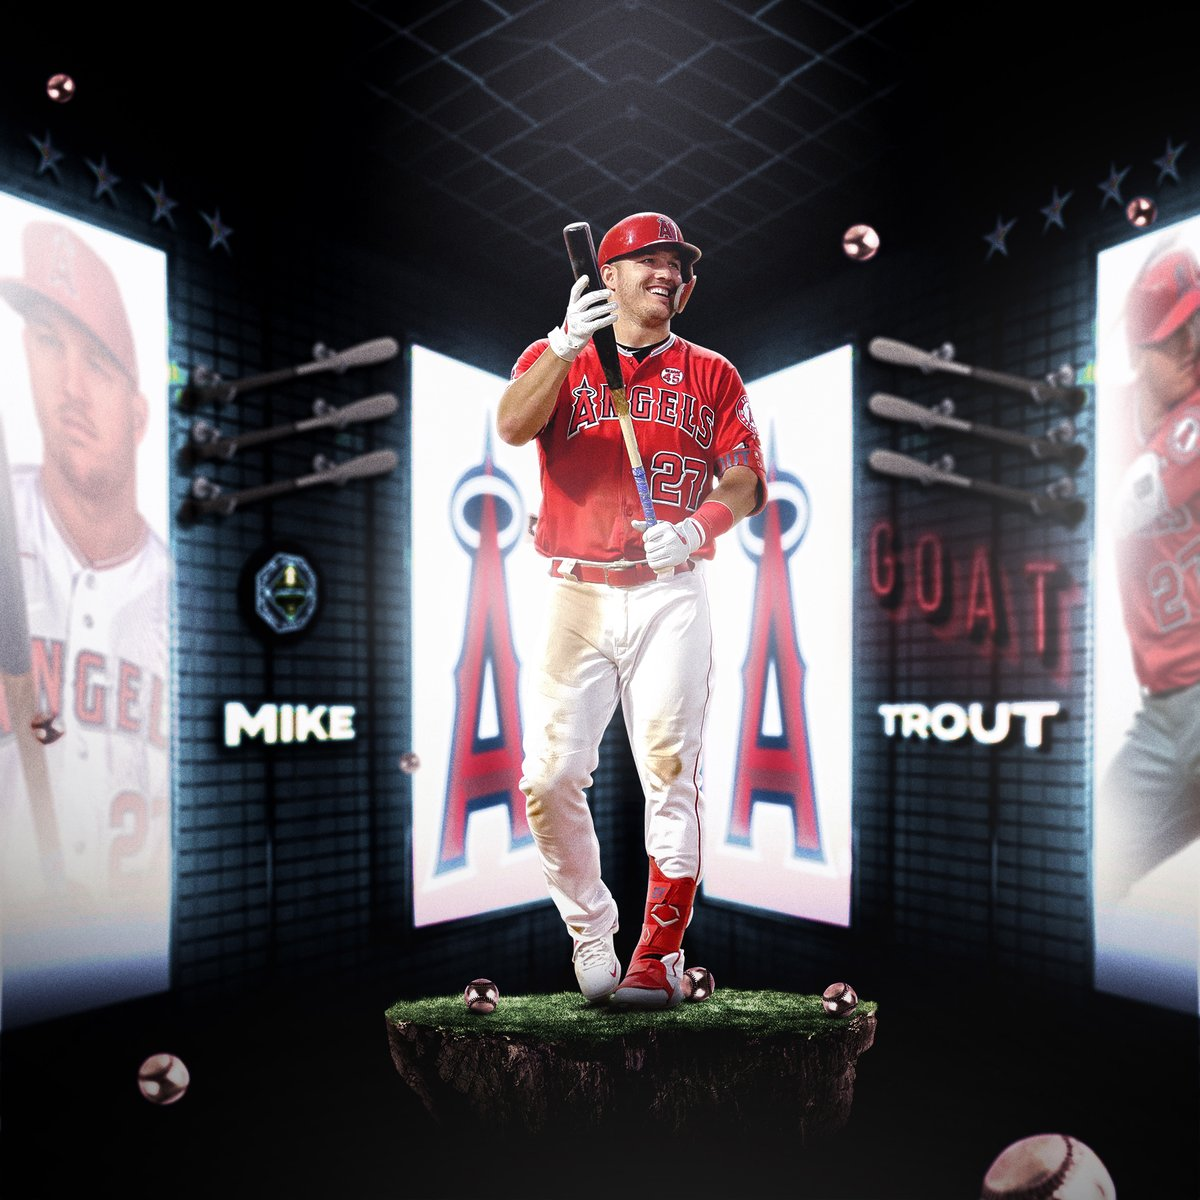 The 🐐 is still in his 20s.   Happy 29th birthday to @MikeTrout! https://t.co/z69SfE3AaU